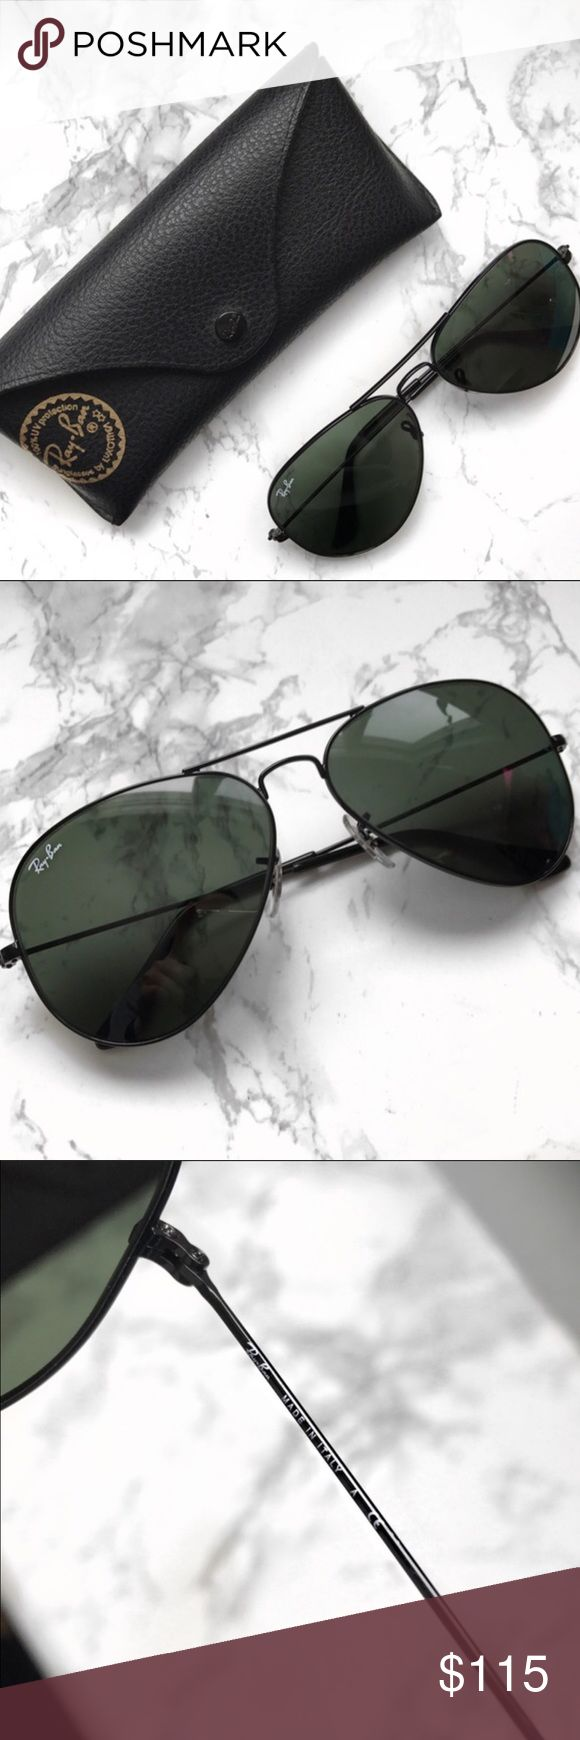 NEW AUTHENTIC Unisex Black Frame Ray Ban A brand new pair of authentic ray bands aviator sunglasses. They are made in Italy and I have posted pictures above.   MODEL: RB 3025 L2823 in black/crystal grey. LENS WIDTH: 58.   Non-Polarized.   🚫No Trades🚫 ✨Reasonable Offers✨ Ray-Ban Accessories Sunglasses